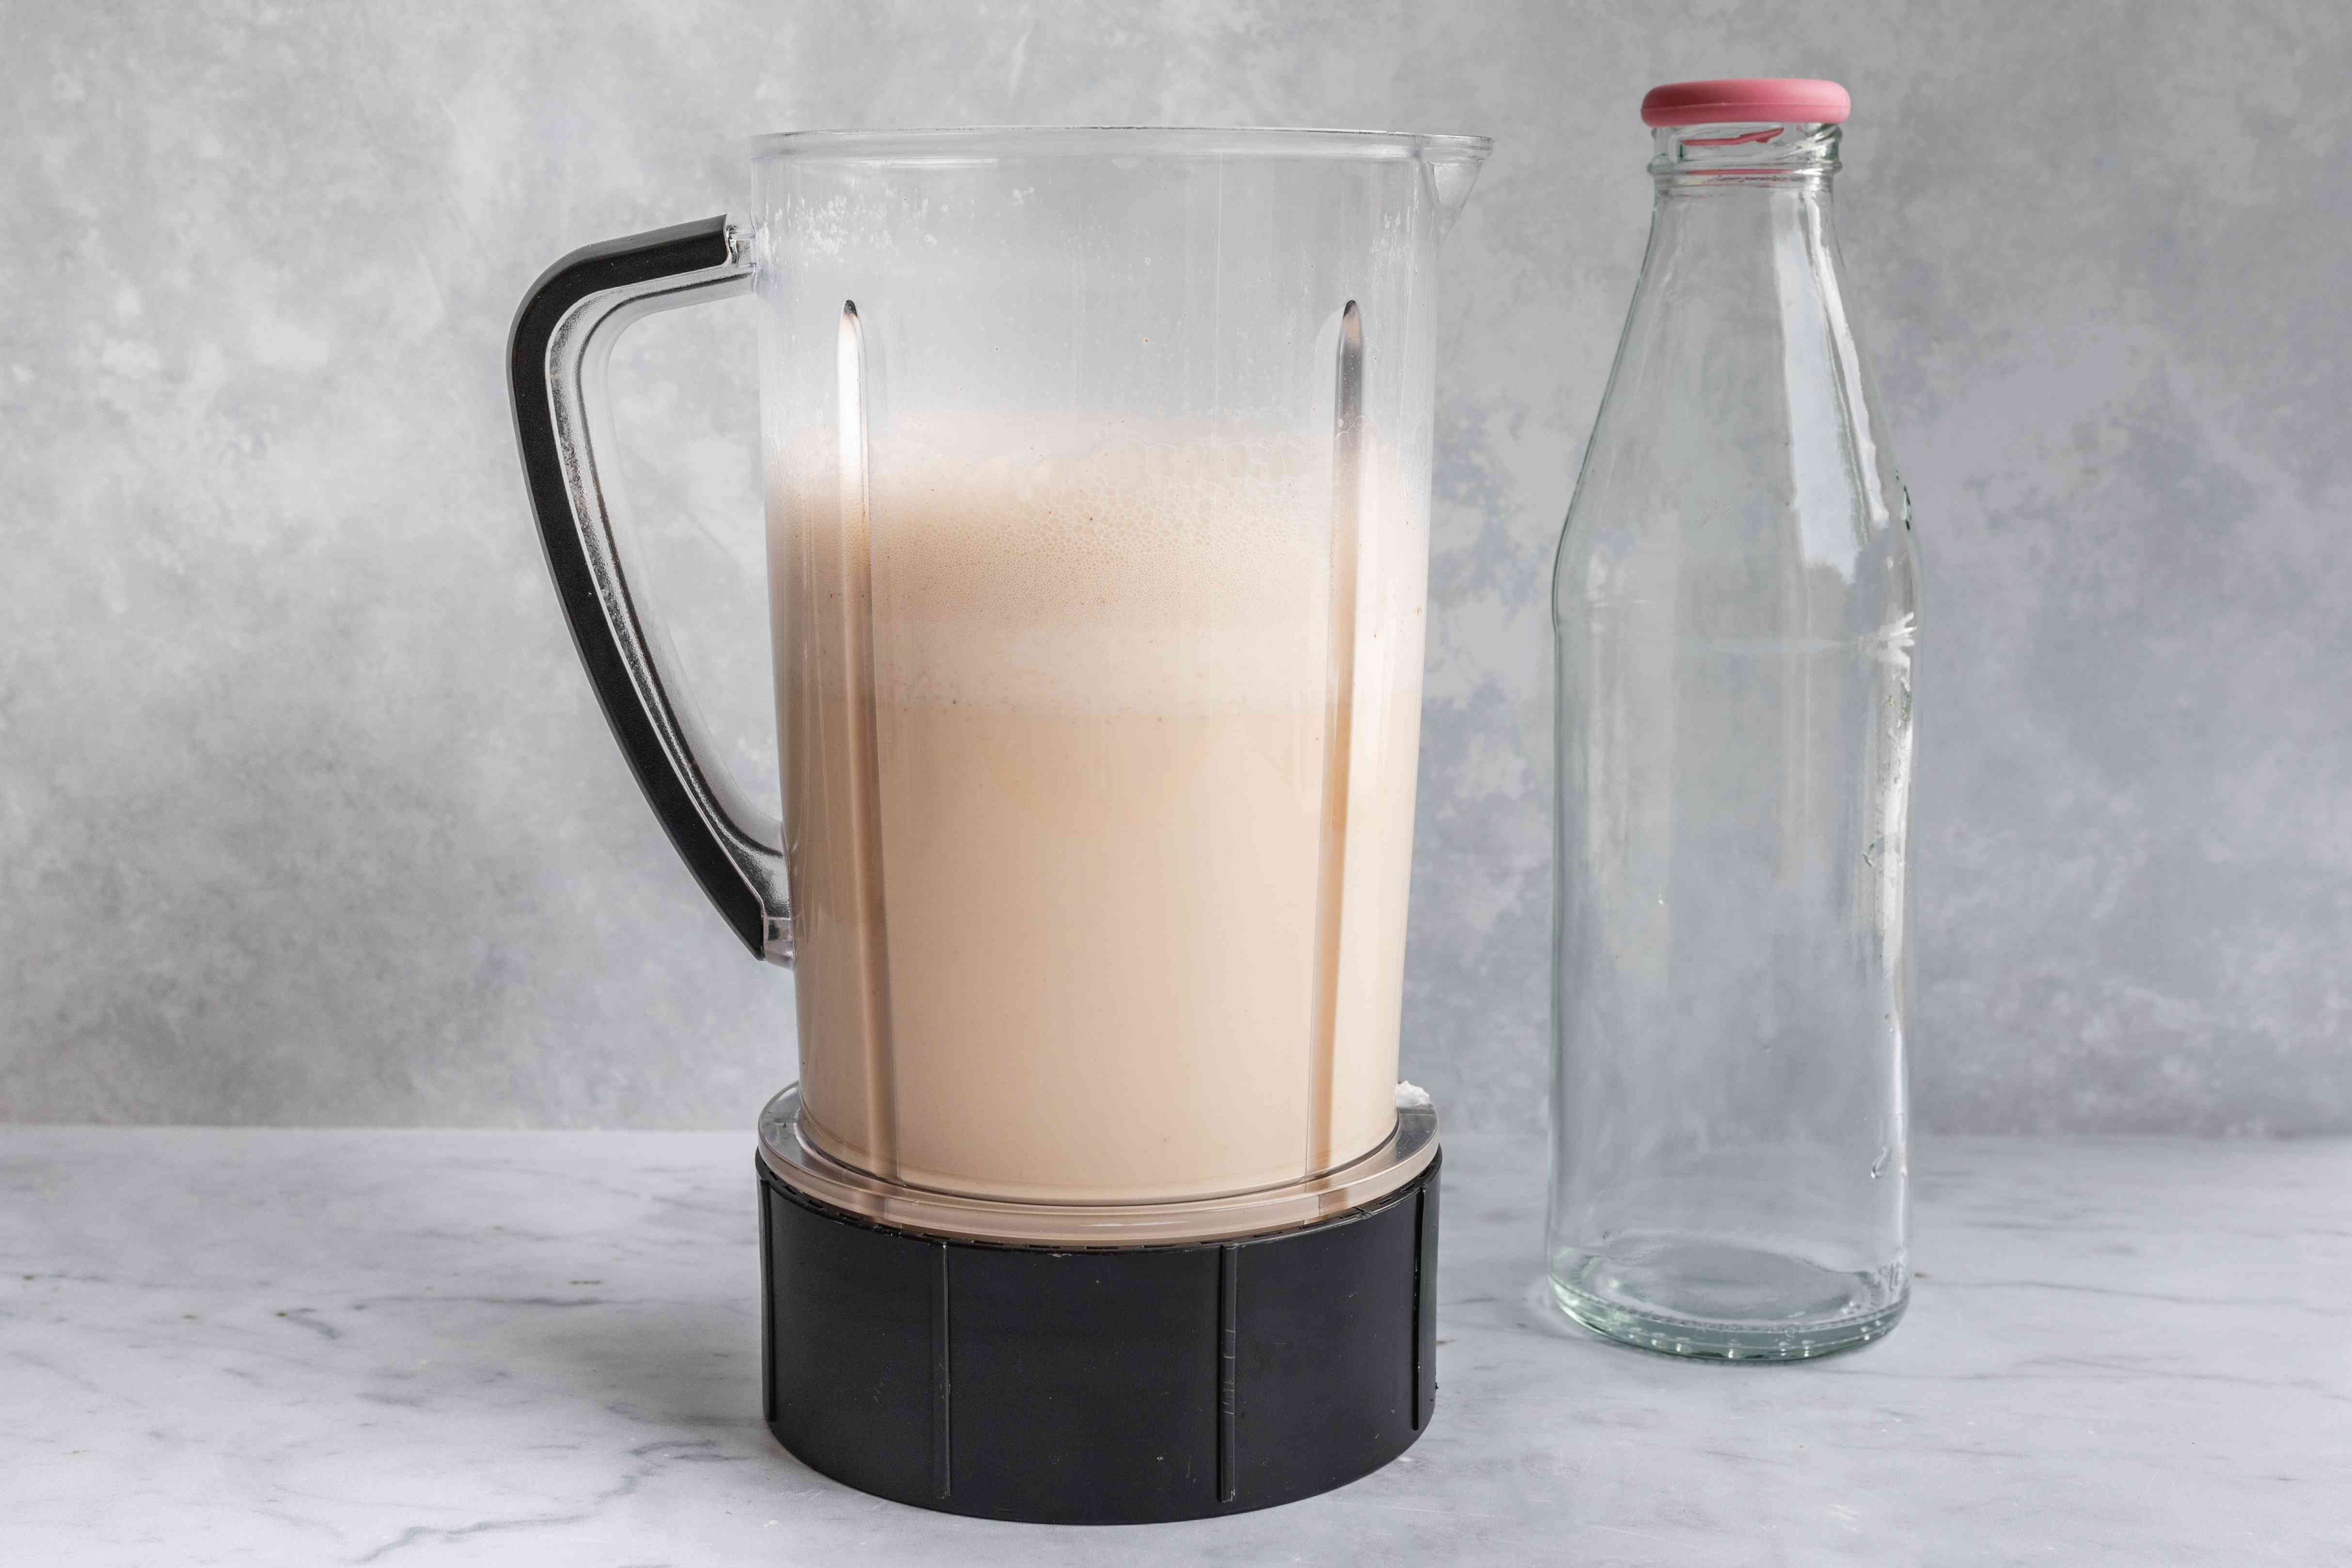 Coquito blended